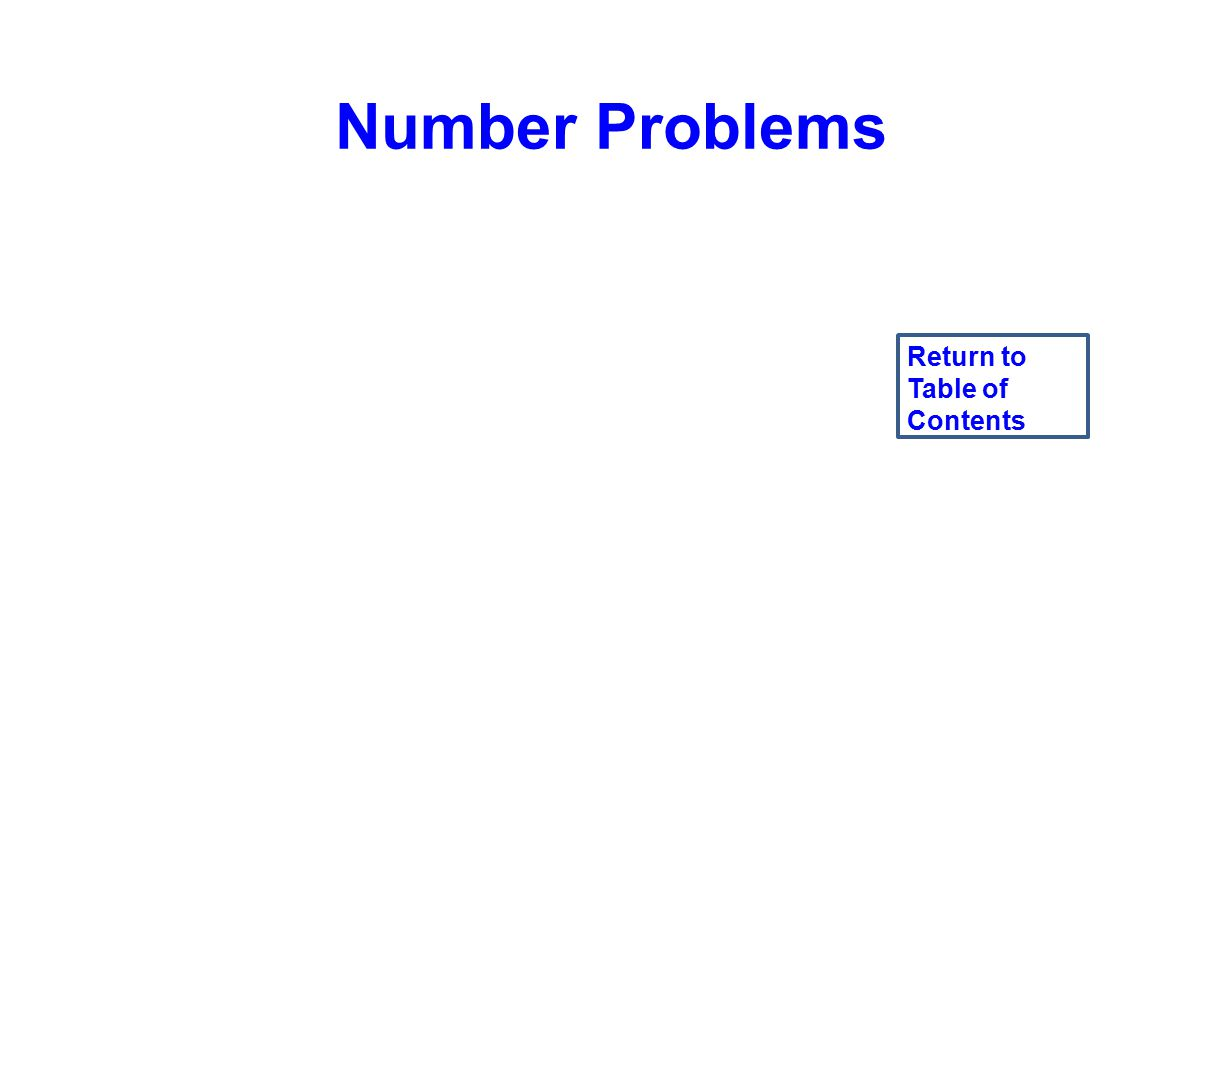 Number Problems Return to Table of Contents